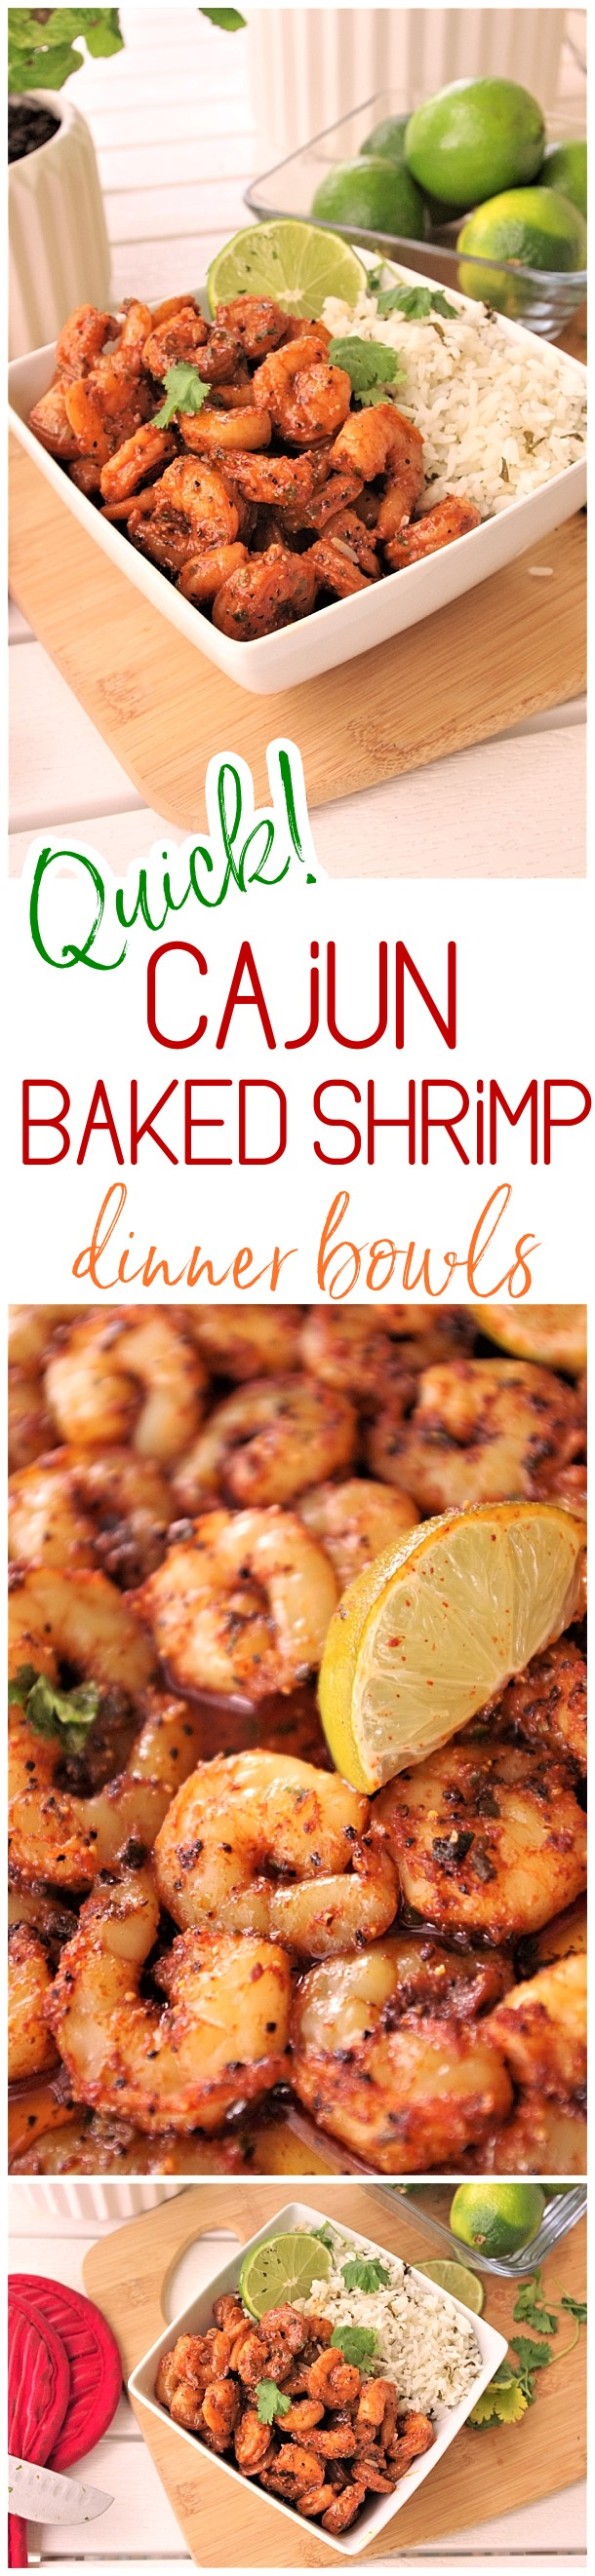 Quick and Easy Cajun Baked Sheet Pan Shrimp Bowls Lunch or Dinner Family Style Recipe - Use it in tacos, meal prep bowls, or over rice or noodles. So versatile and the flavor is so yummy you'll want to eat the entire pan by itself! Dreaming in DIY #quickcajunbakedshrimp #shrimpdinnerbowls #30minutecajunshrimp #cajunshrimp #sheetpanshrimp #shrimprecipes #easyshrimprecipes #quickshrimprecipe #seafood #baked #onepanmeals #fastrecipes #lunchrecipes #dinnerrecipes #healthyquickrecipes #quickandeasyrecipes